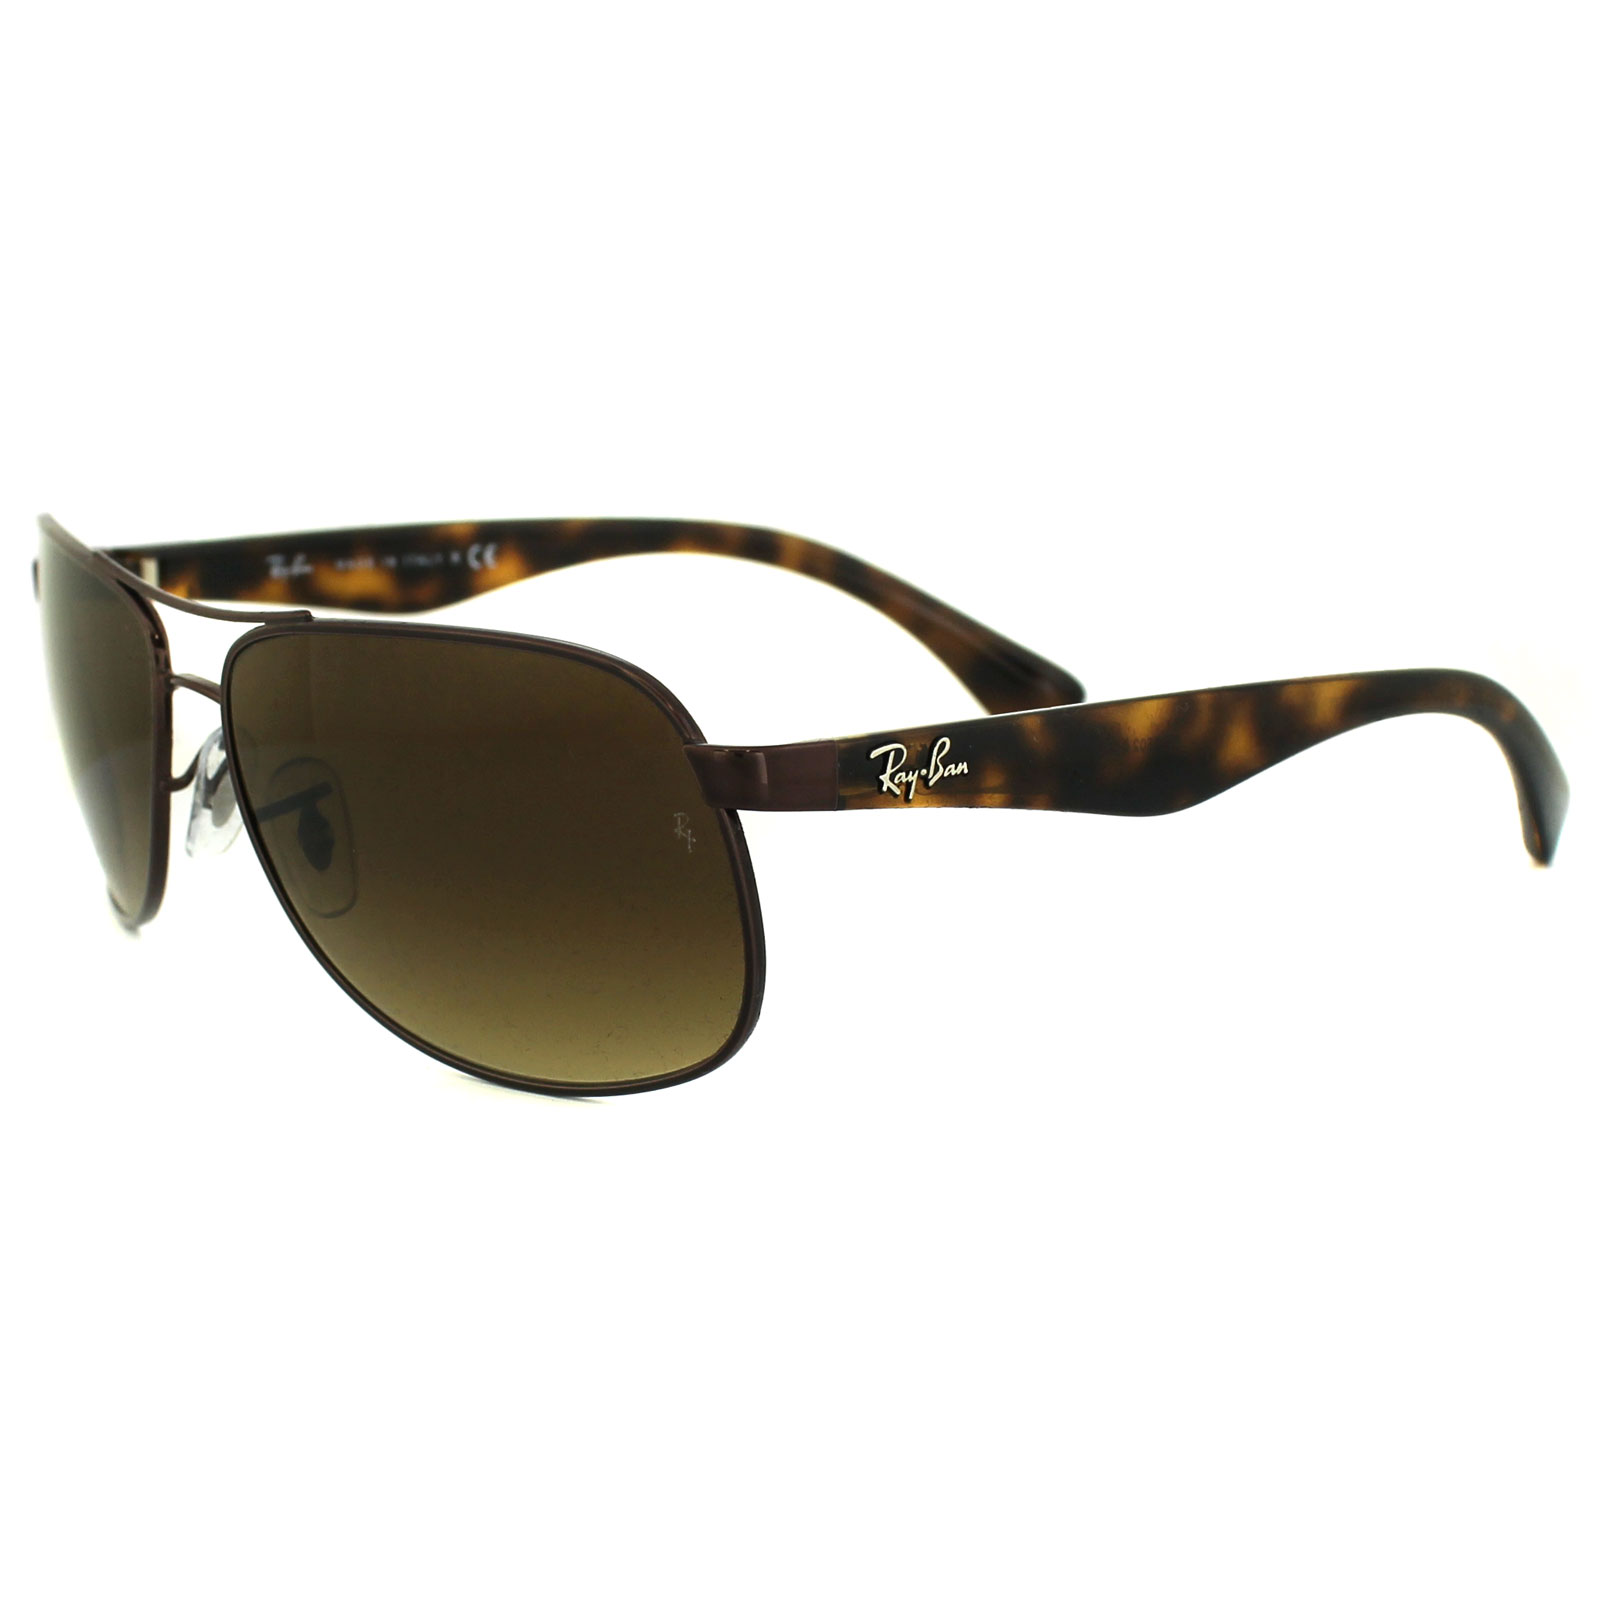 ad0a0c6ab1 Best Ray Ban Sunglasses Small Face « Heritage Malta